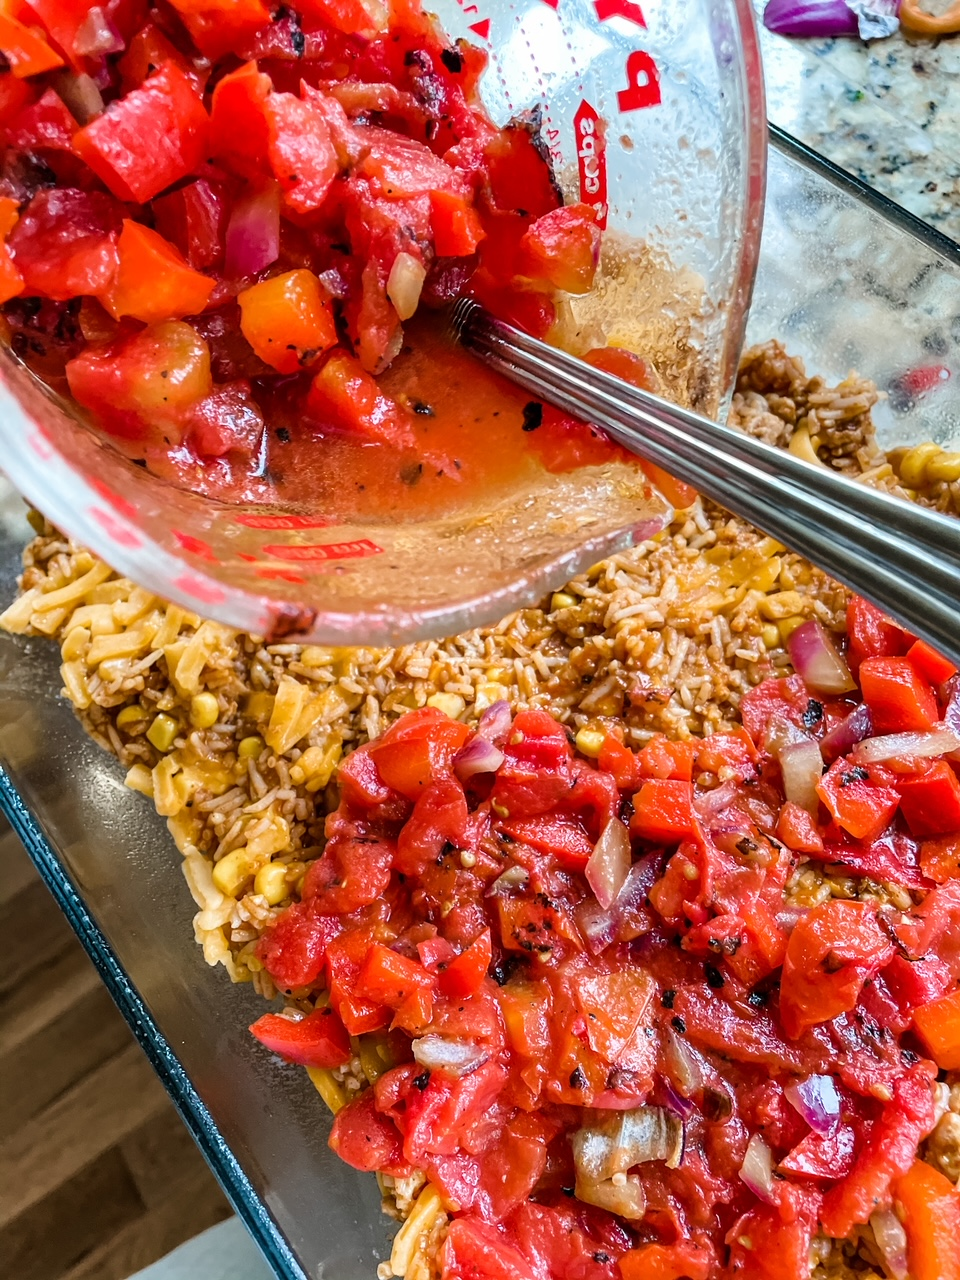 Diced tomatoes being poured into a baking dish